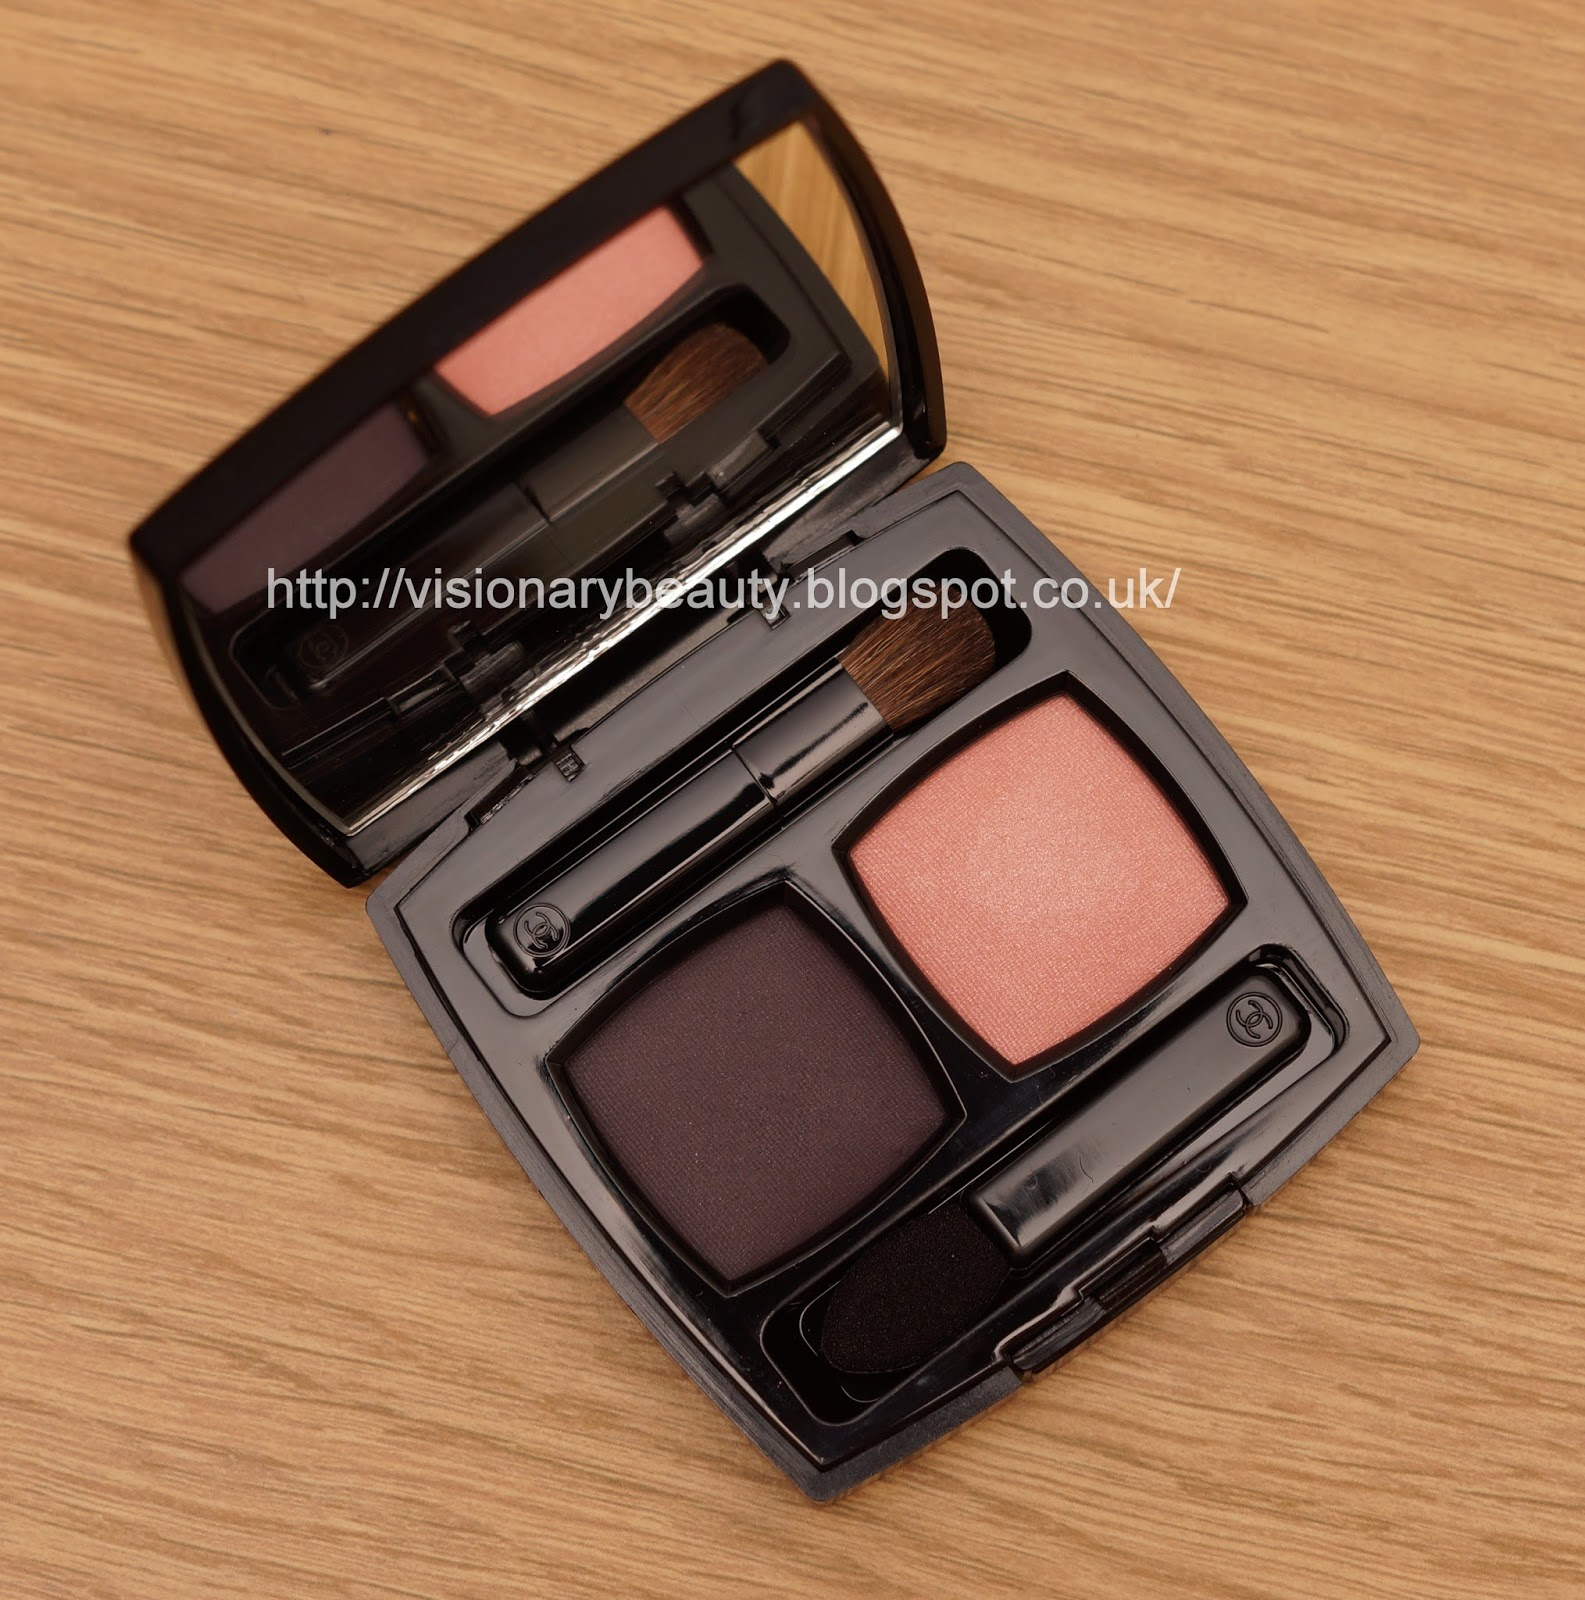 Visionary Beauty February 2014 La Girl Pro Face Hd Matte Pressed Powder Medium Biege 609 Peachy Pink And A Smoky Plum I Have To Apply The Lighter Shade Very Softly Otherwise It Takes On Coral Hue Which Looks Off With My Colouring